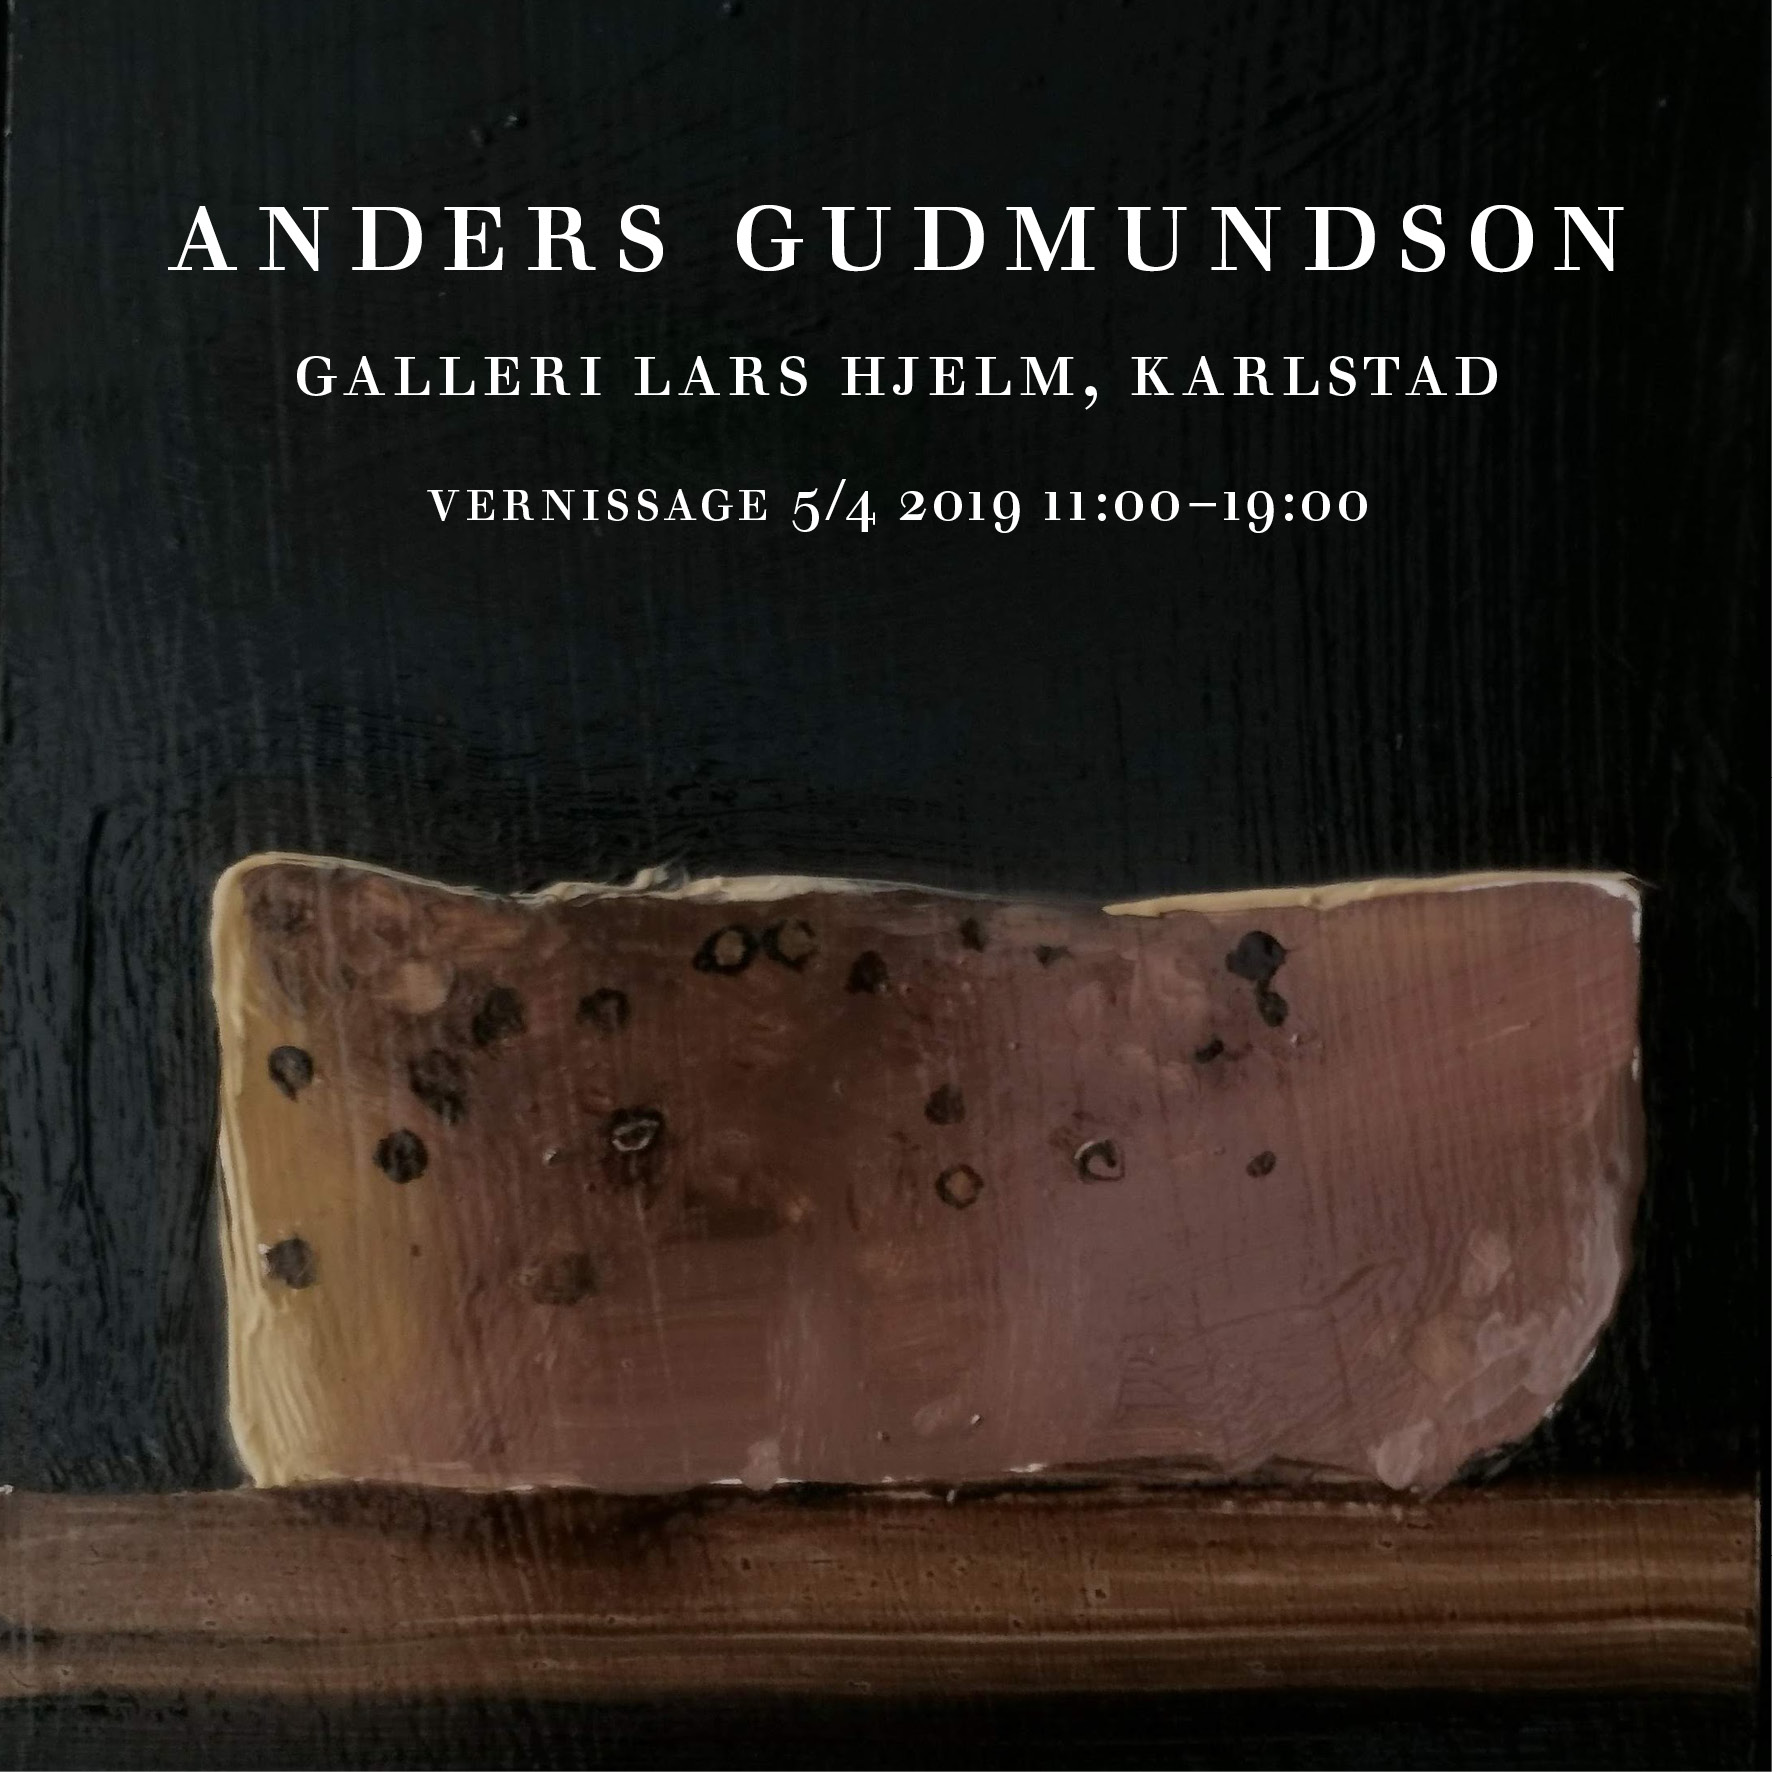 Vernissage hos Galleri Lars Hjelm i Karlstad 5 April